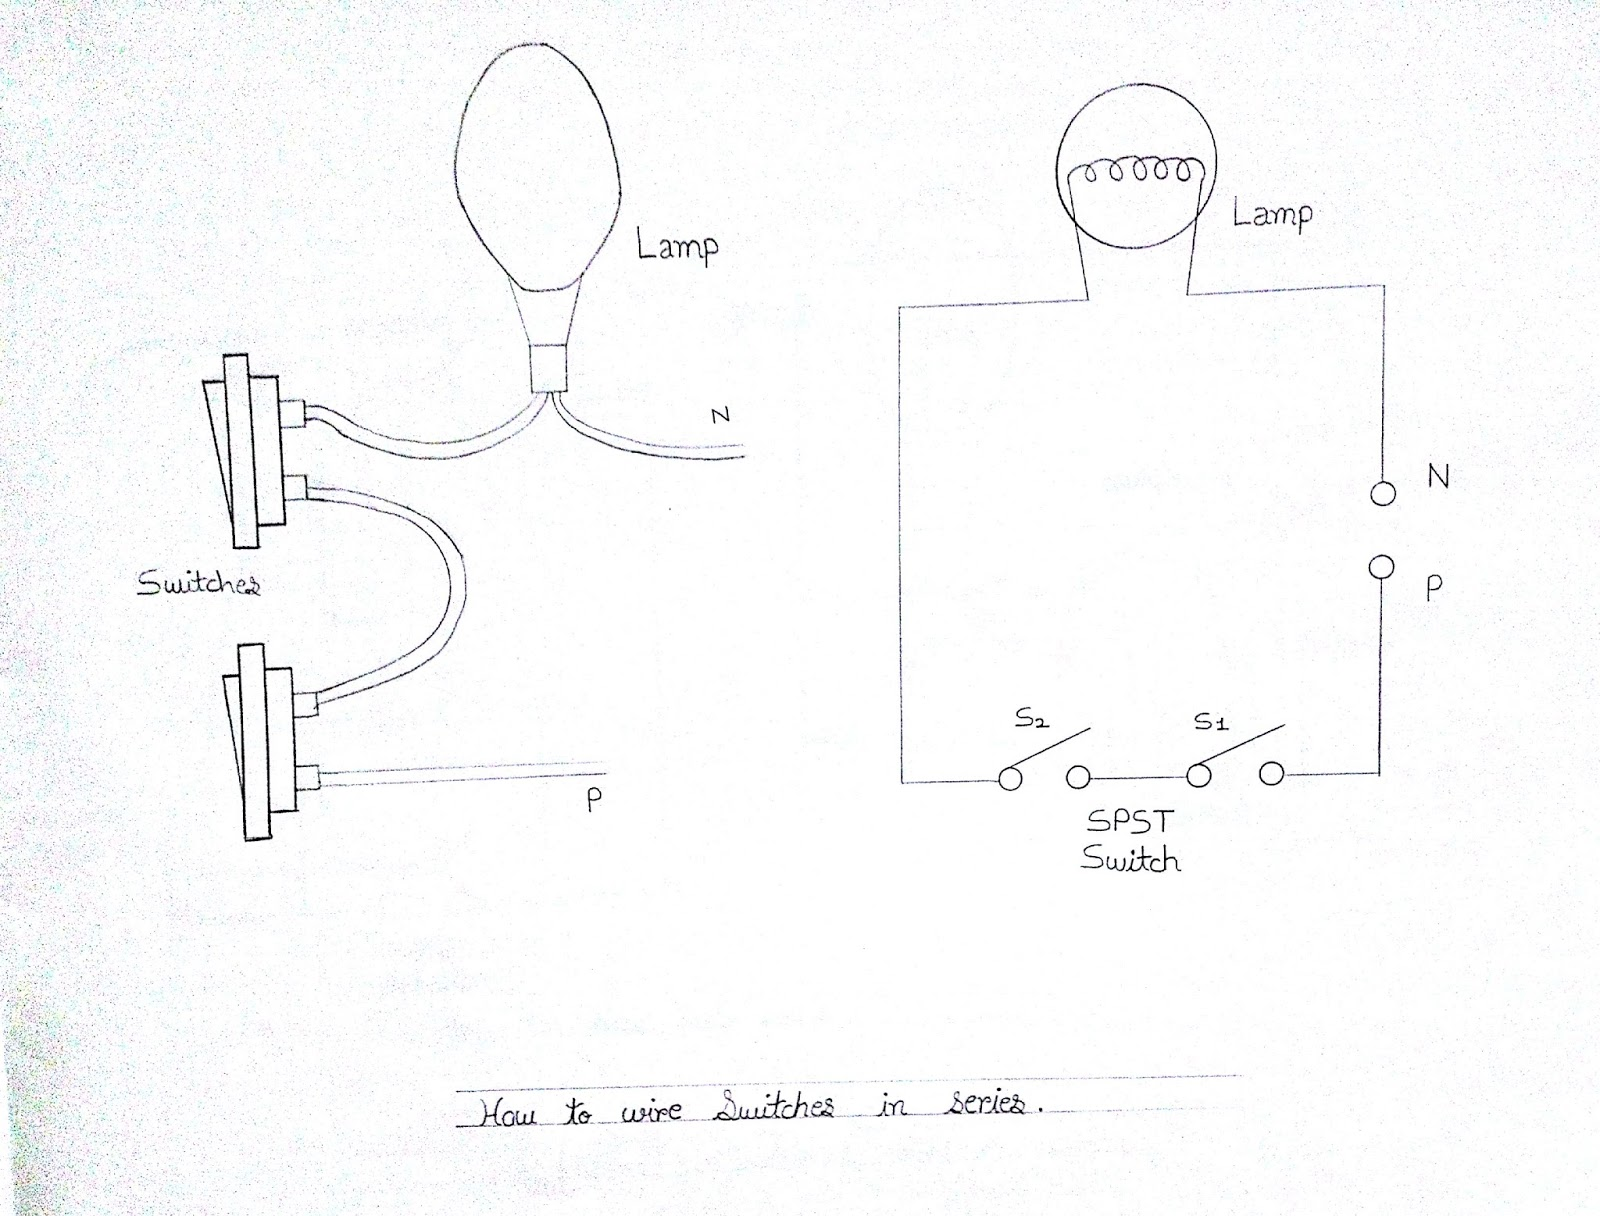 electrical wiring diagrams for houses